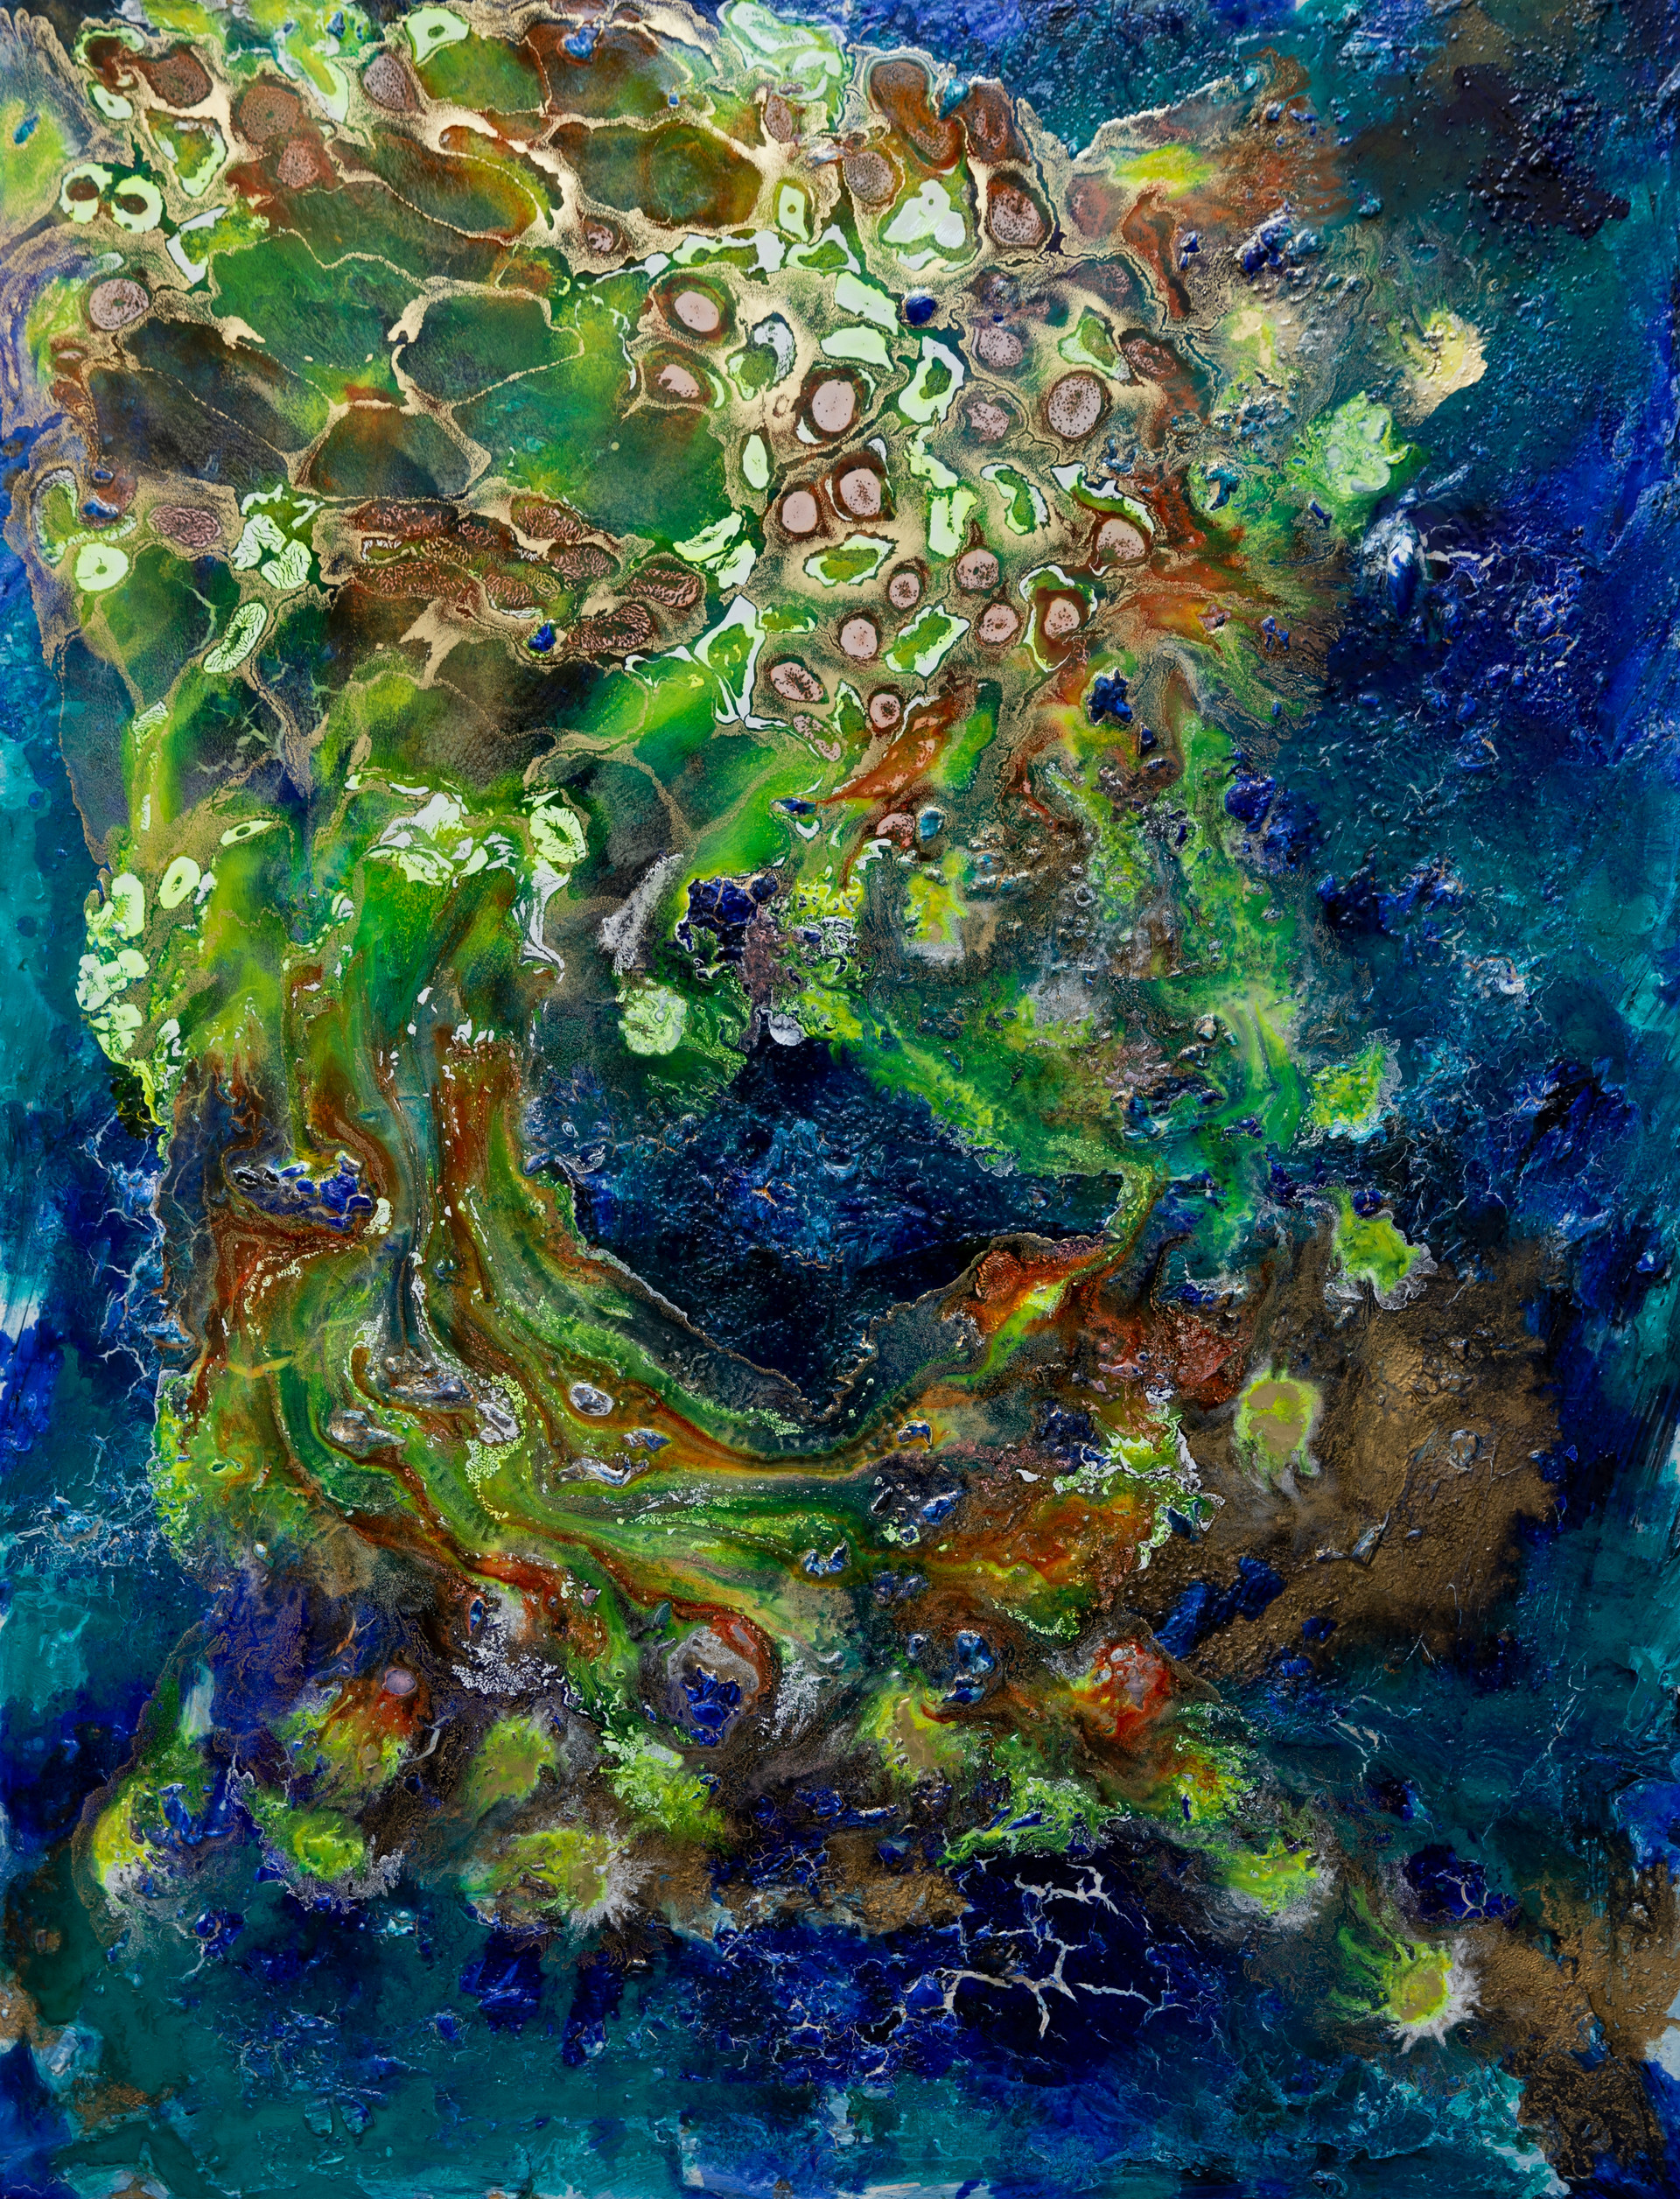 Oceanicus - mixed media on canvas - 116 cm x 89 cm - 2020